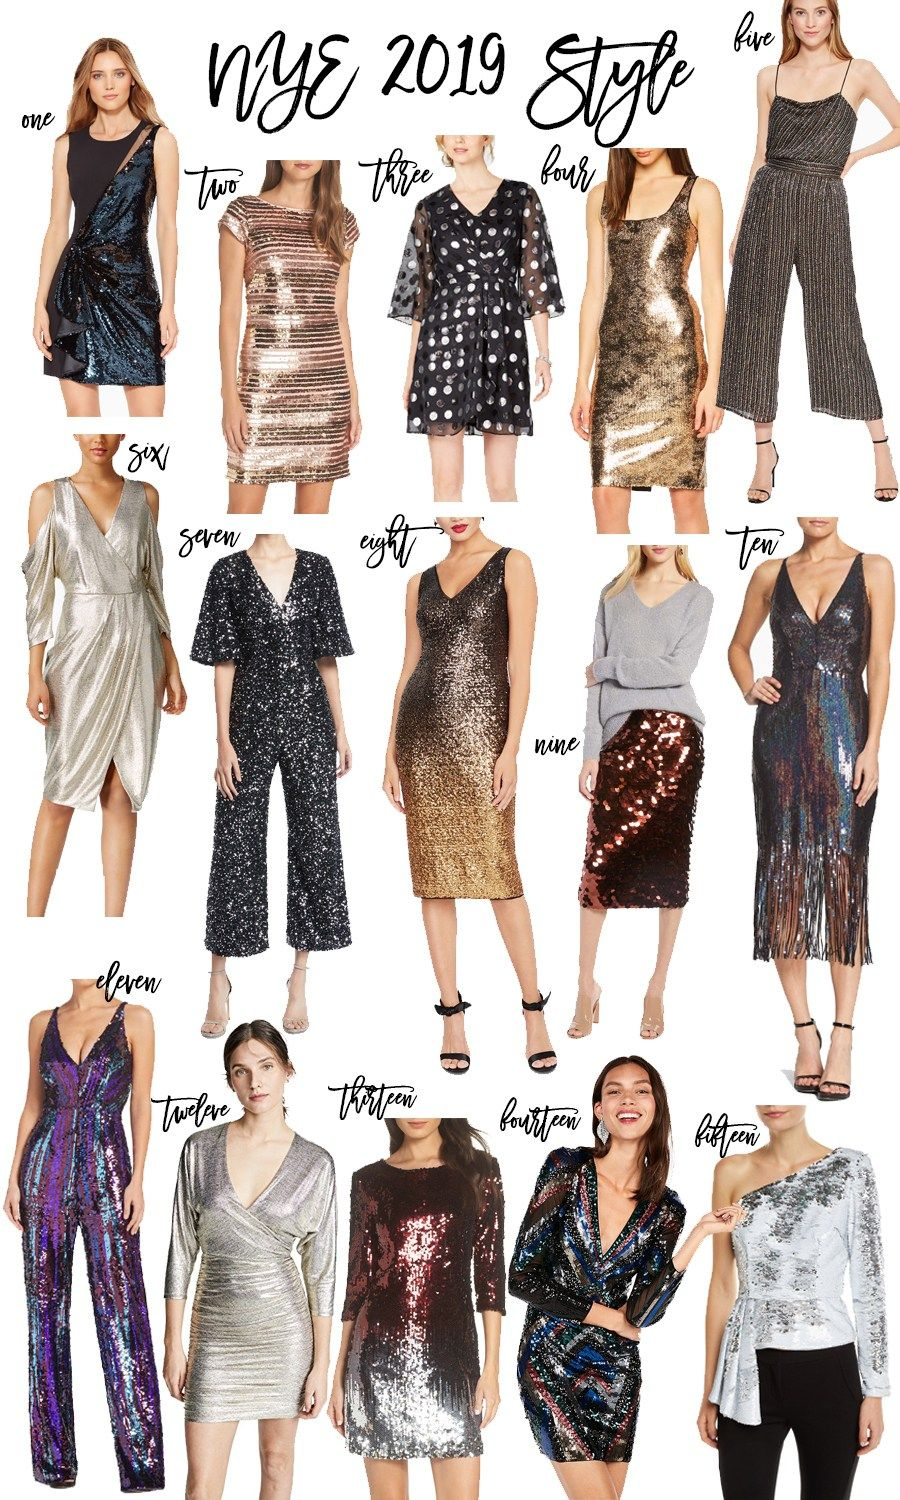 15 Fabulous NYE Outfits to Ring in the New Year | Have Need Want